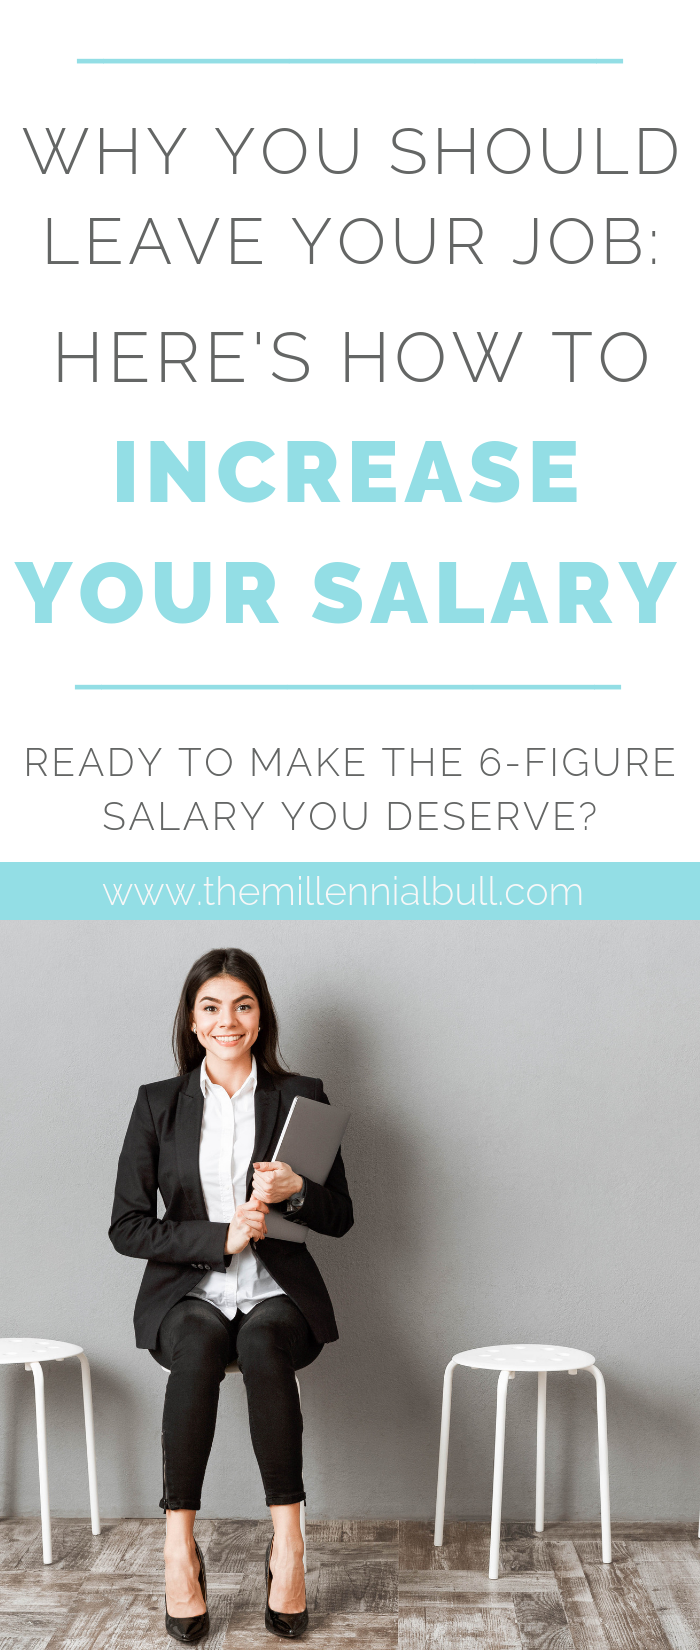 how to increase your salary pin - Why You Should Leave Your Job: How To Increase Your Salary